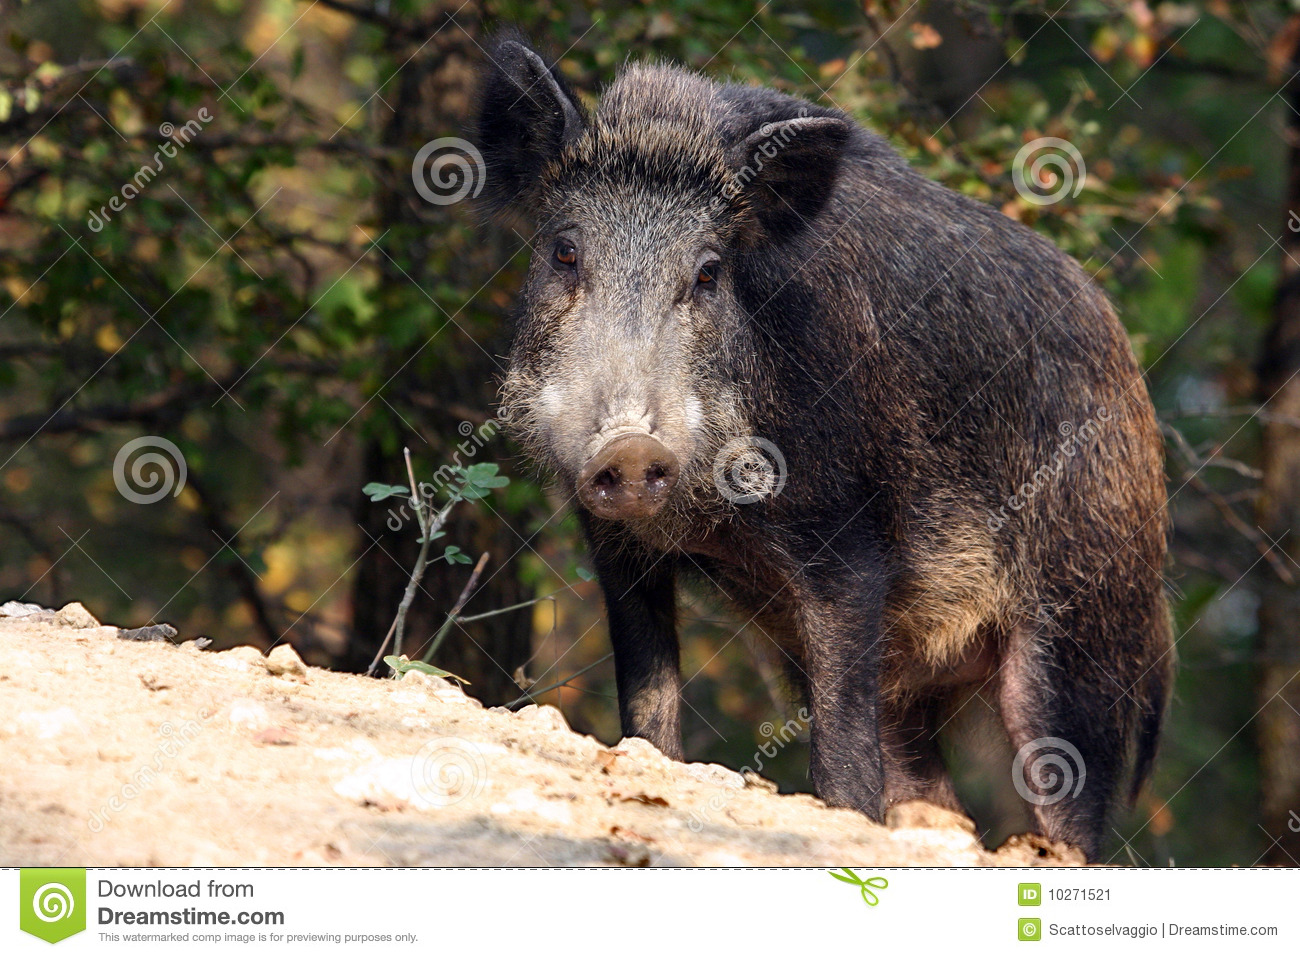 Wild boar or Wild hog (Sus scrofa). Wild boar in the Apennine mountains forest, Italy, Oltrepo Pavese.